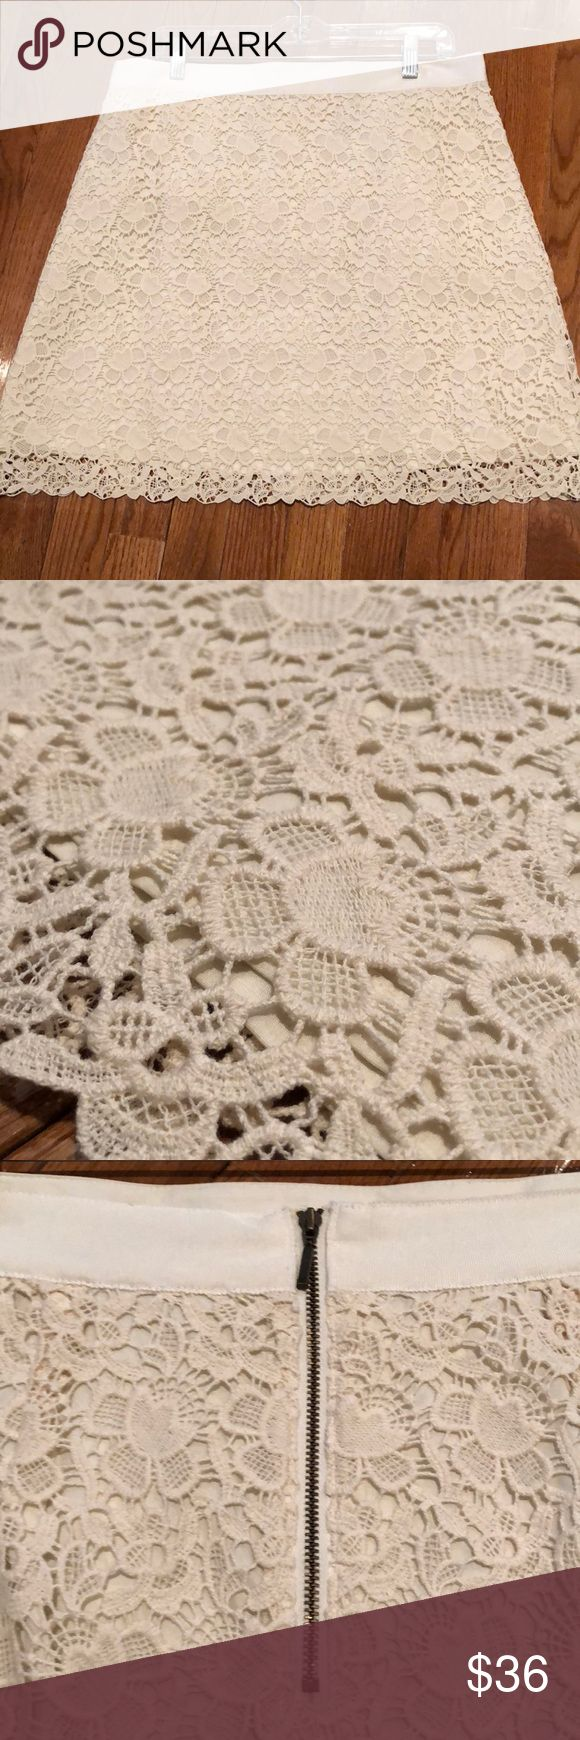 NWT LOFT Gorgeous Cream Lace Skirt 12 NWT Ann Taylor LOFT Gorgeous Cream Lace Skirt - Size 12 and perfect for upcoming spring/summer or cruise - fully lined!  Comes from a very clean and smoke free home.  I love to bundle! LOFT Skirts A-Line or Full